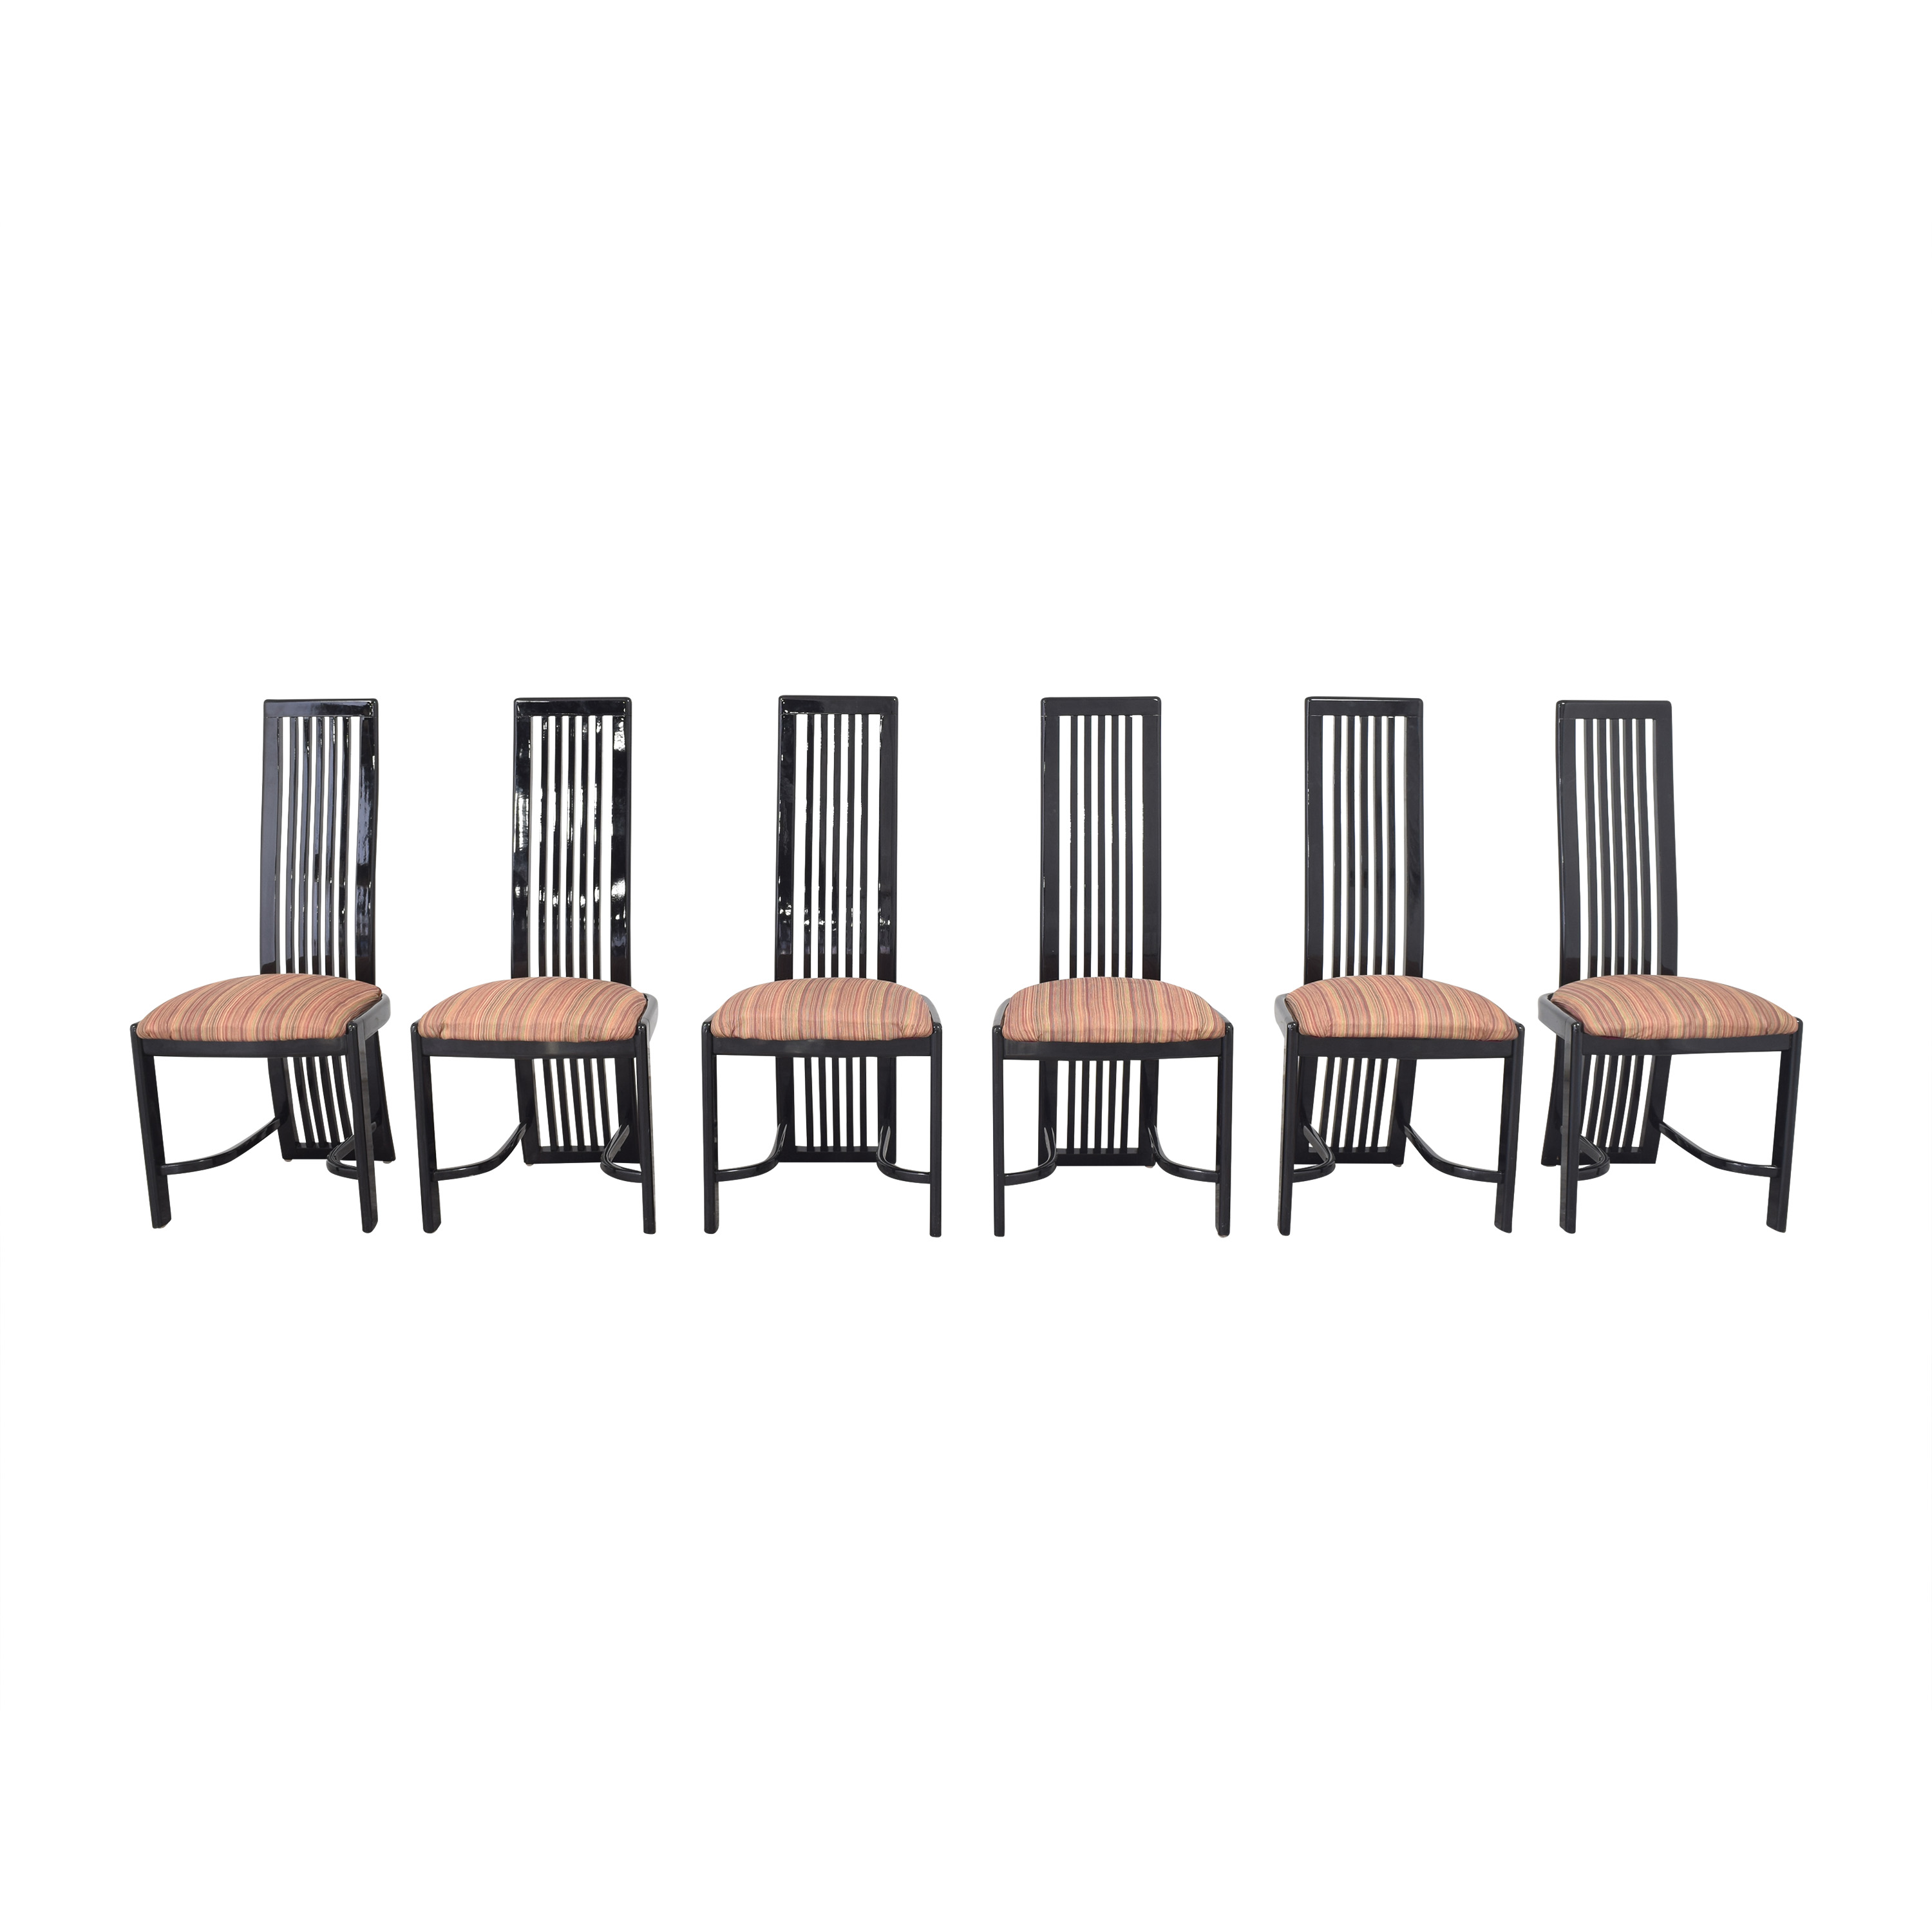 Italian-Style High Back Dining Chairs used